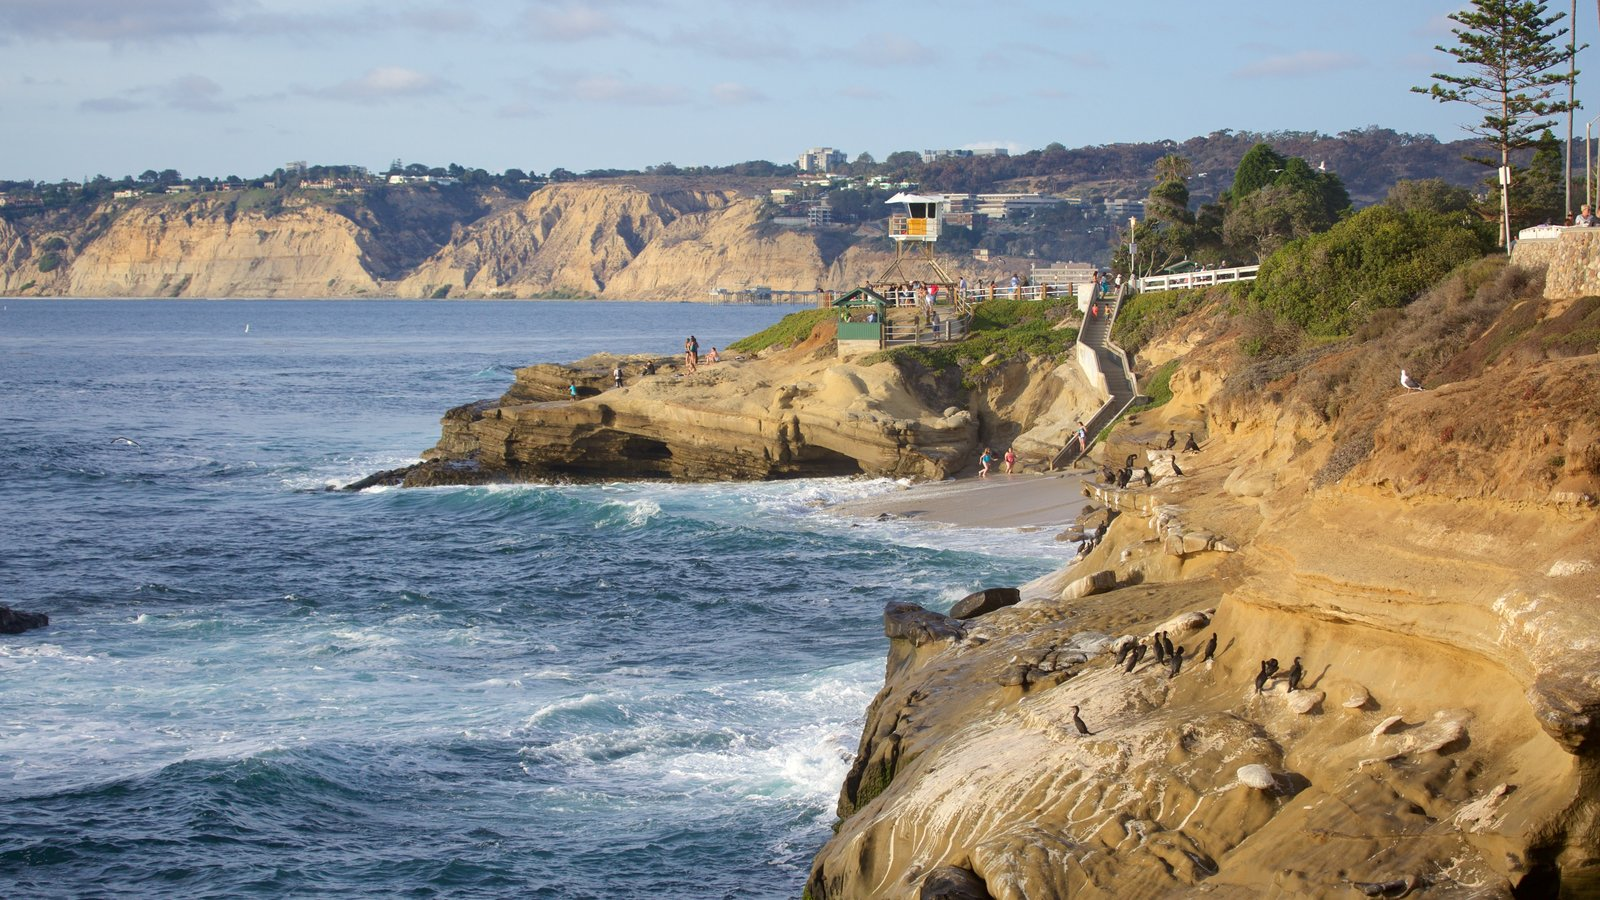 meet la jolla singles San diego speed dating and singles events - happy hour, meetups and mixers in san diego meet local singles, instead of online dating.